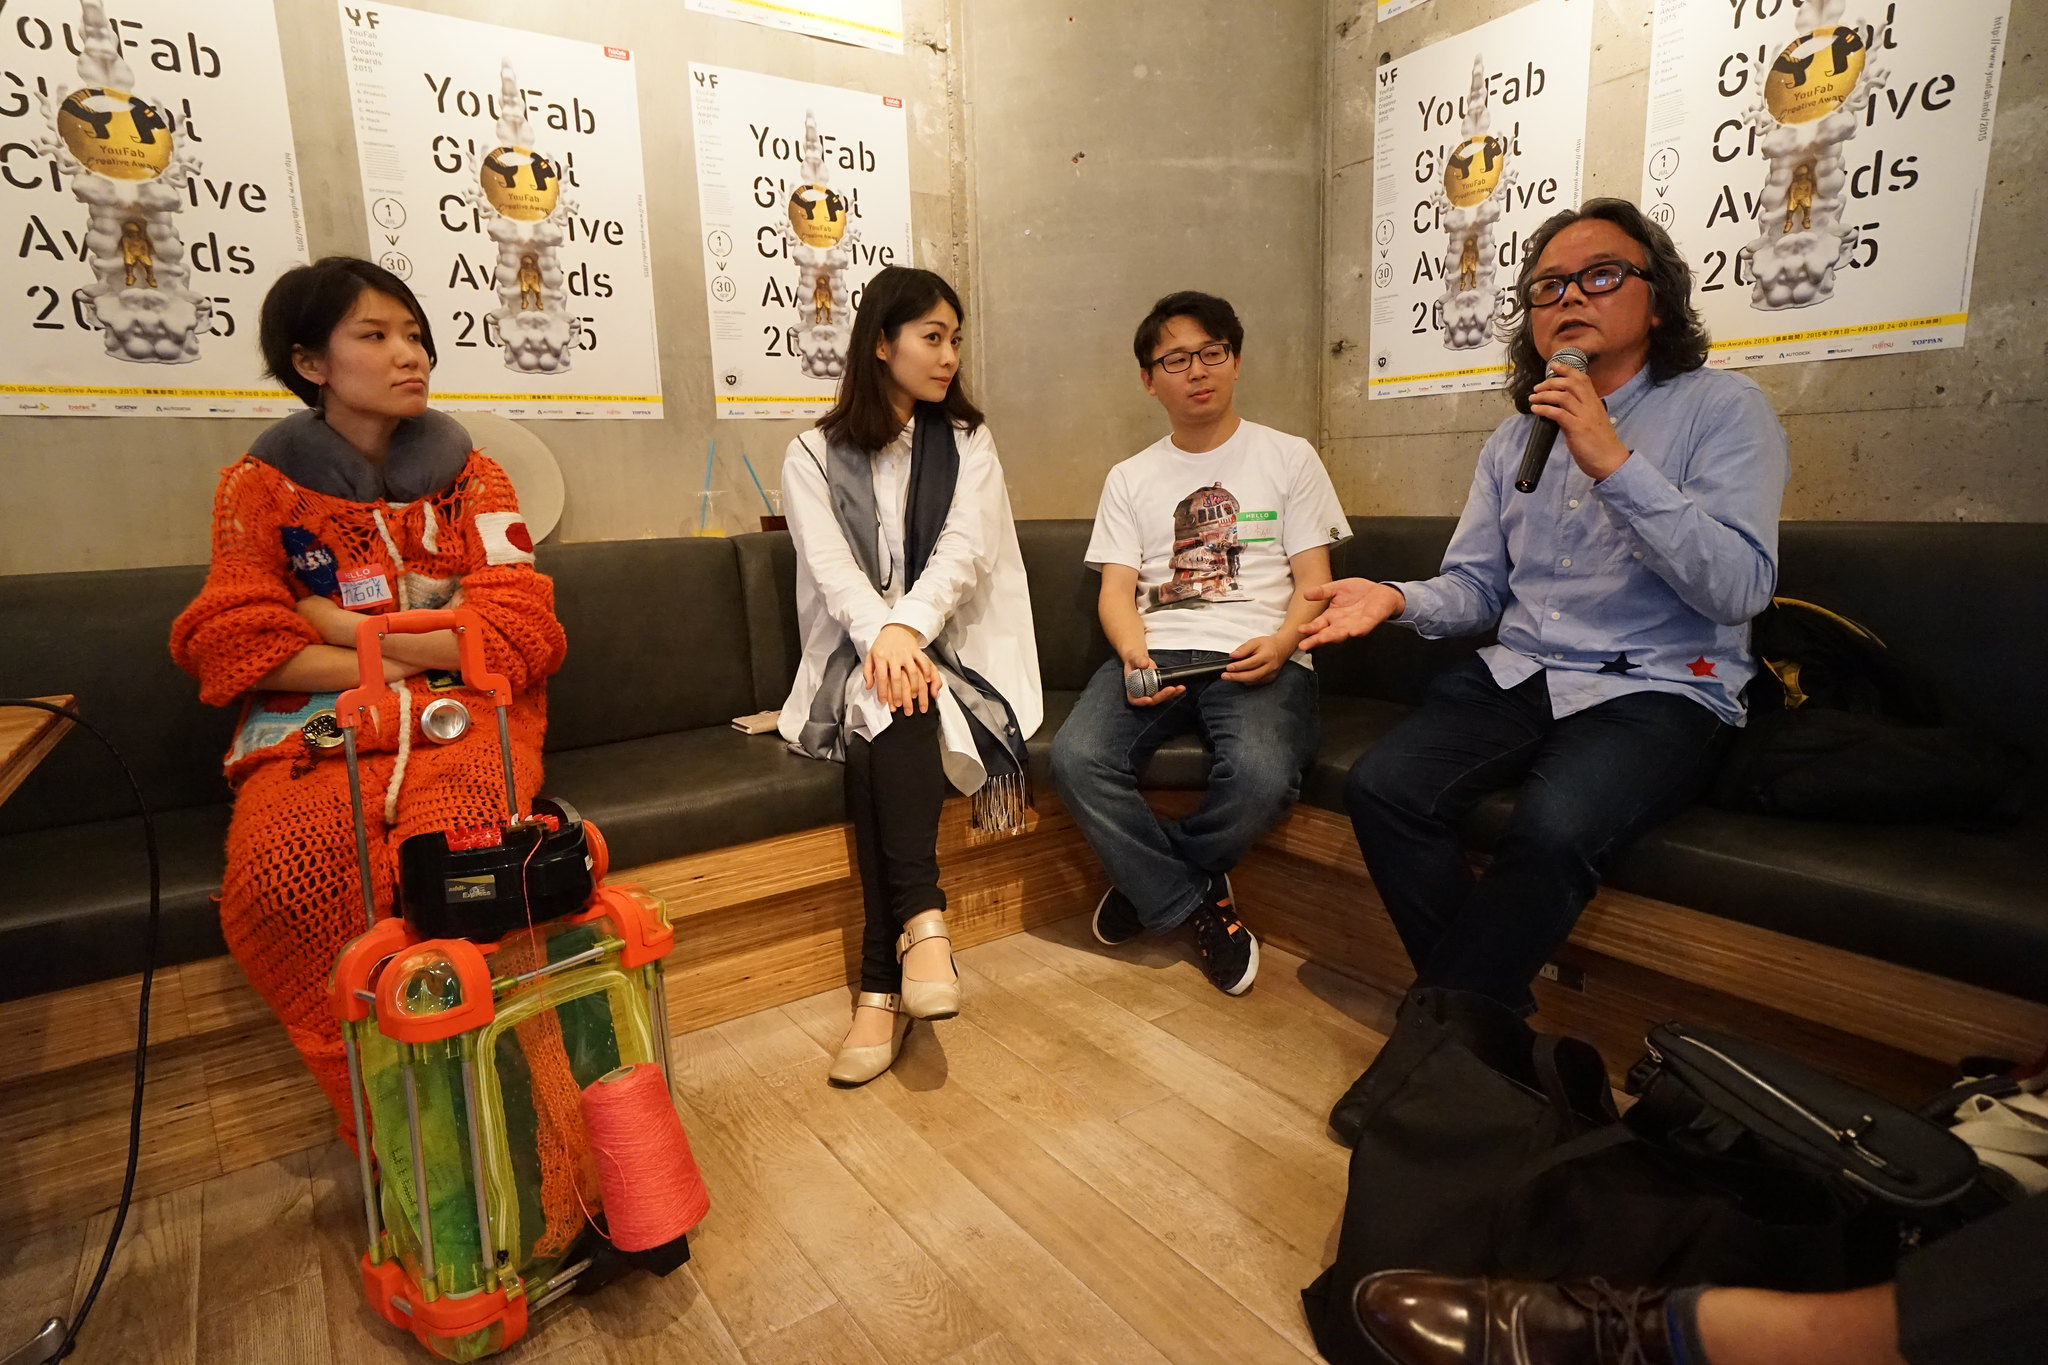 Talk: Fab Meetup Special  YouFab 2015 Kick Off Party!